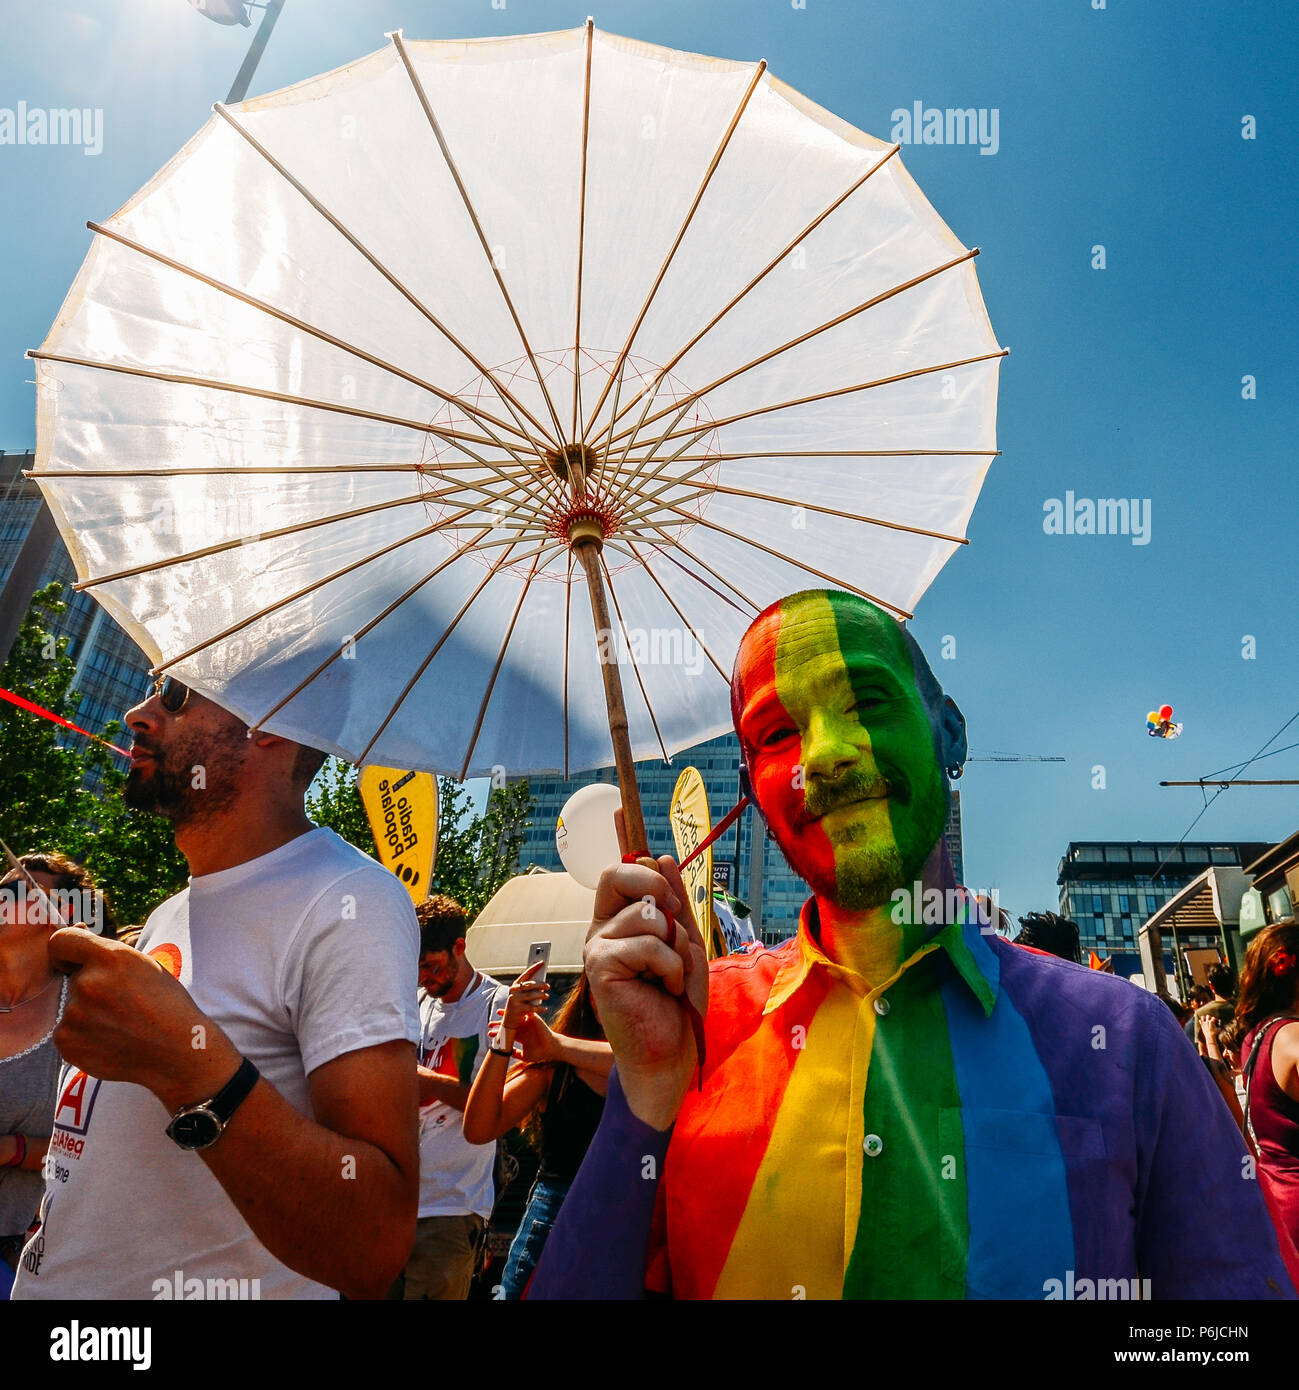 Milan, Italy - June 30, 2018: People at the annual Milan, Italy Pride Parade, where thousands march celebrating and claiming equality and legal rights for lesbian, gay, bisexual, and transgender (LGBT) people and their allies. Milano Pride is one of the largest LGBT organised events in Italy Credit: Alexandre Rotenberg/Alamy Live News Stock Photo